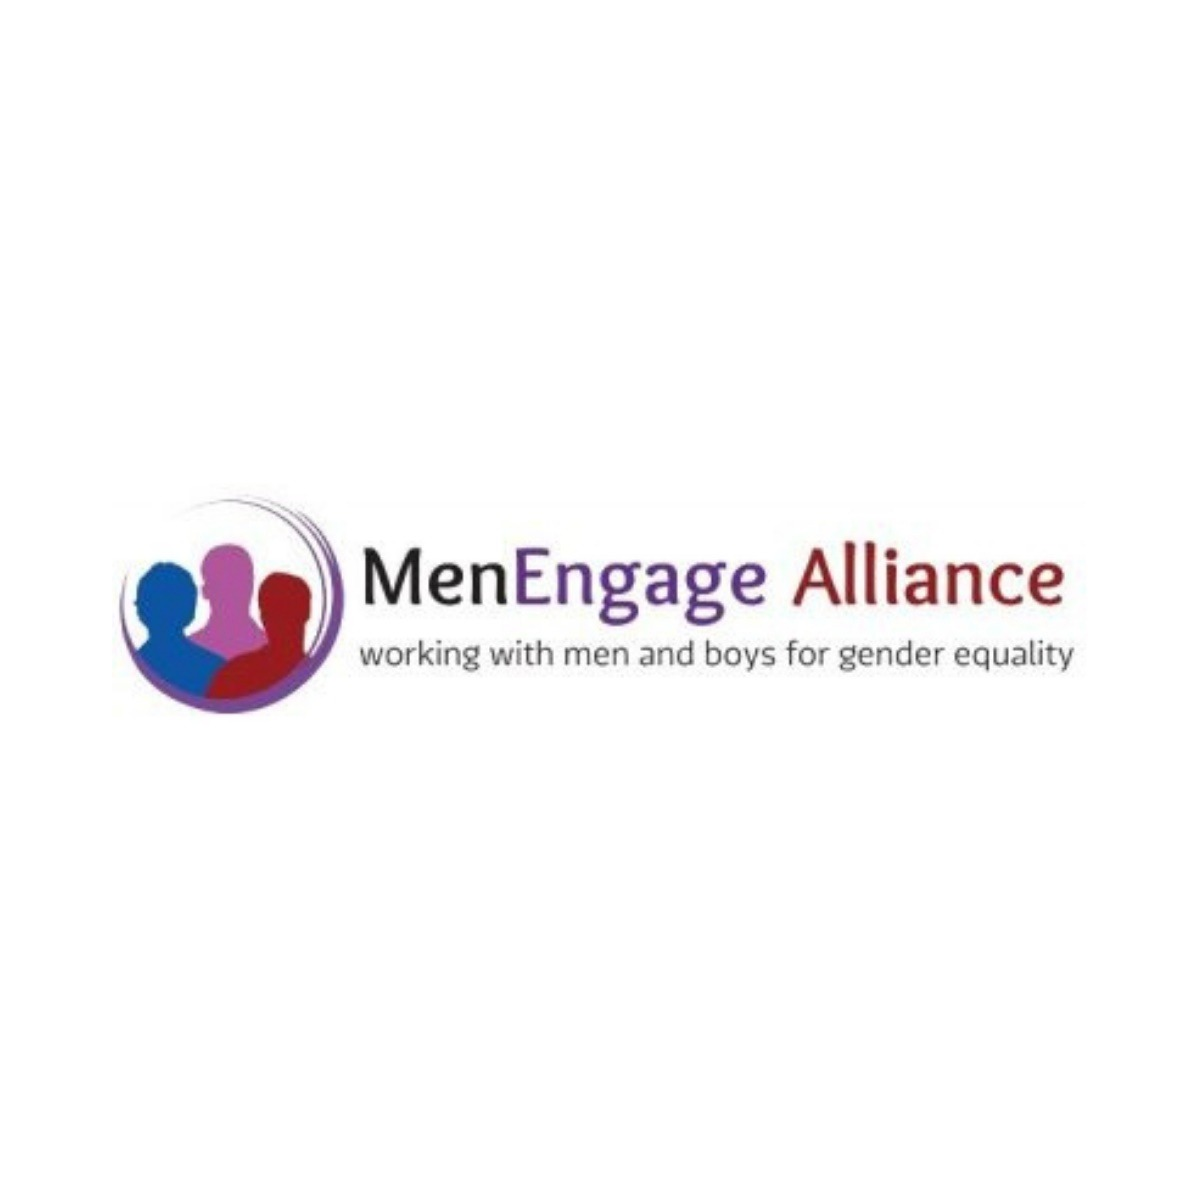 Men-engage-alliance-Logo